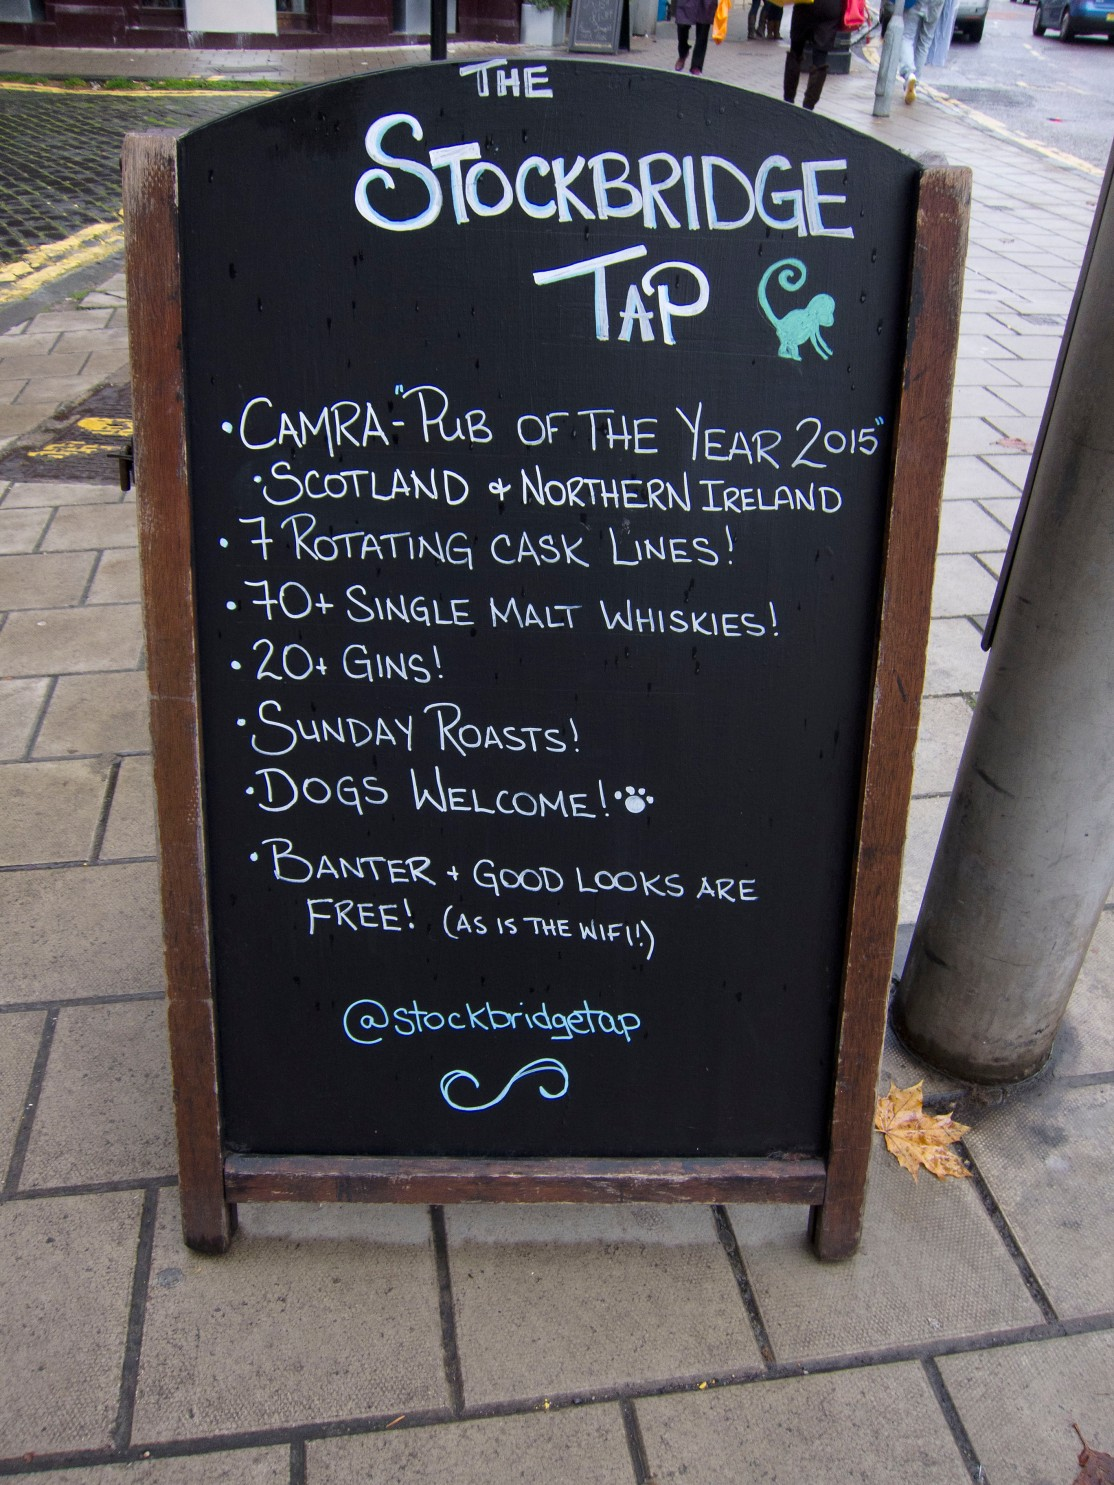 Stockbridge tap board